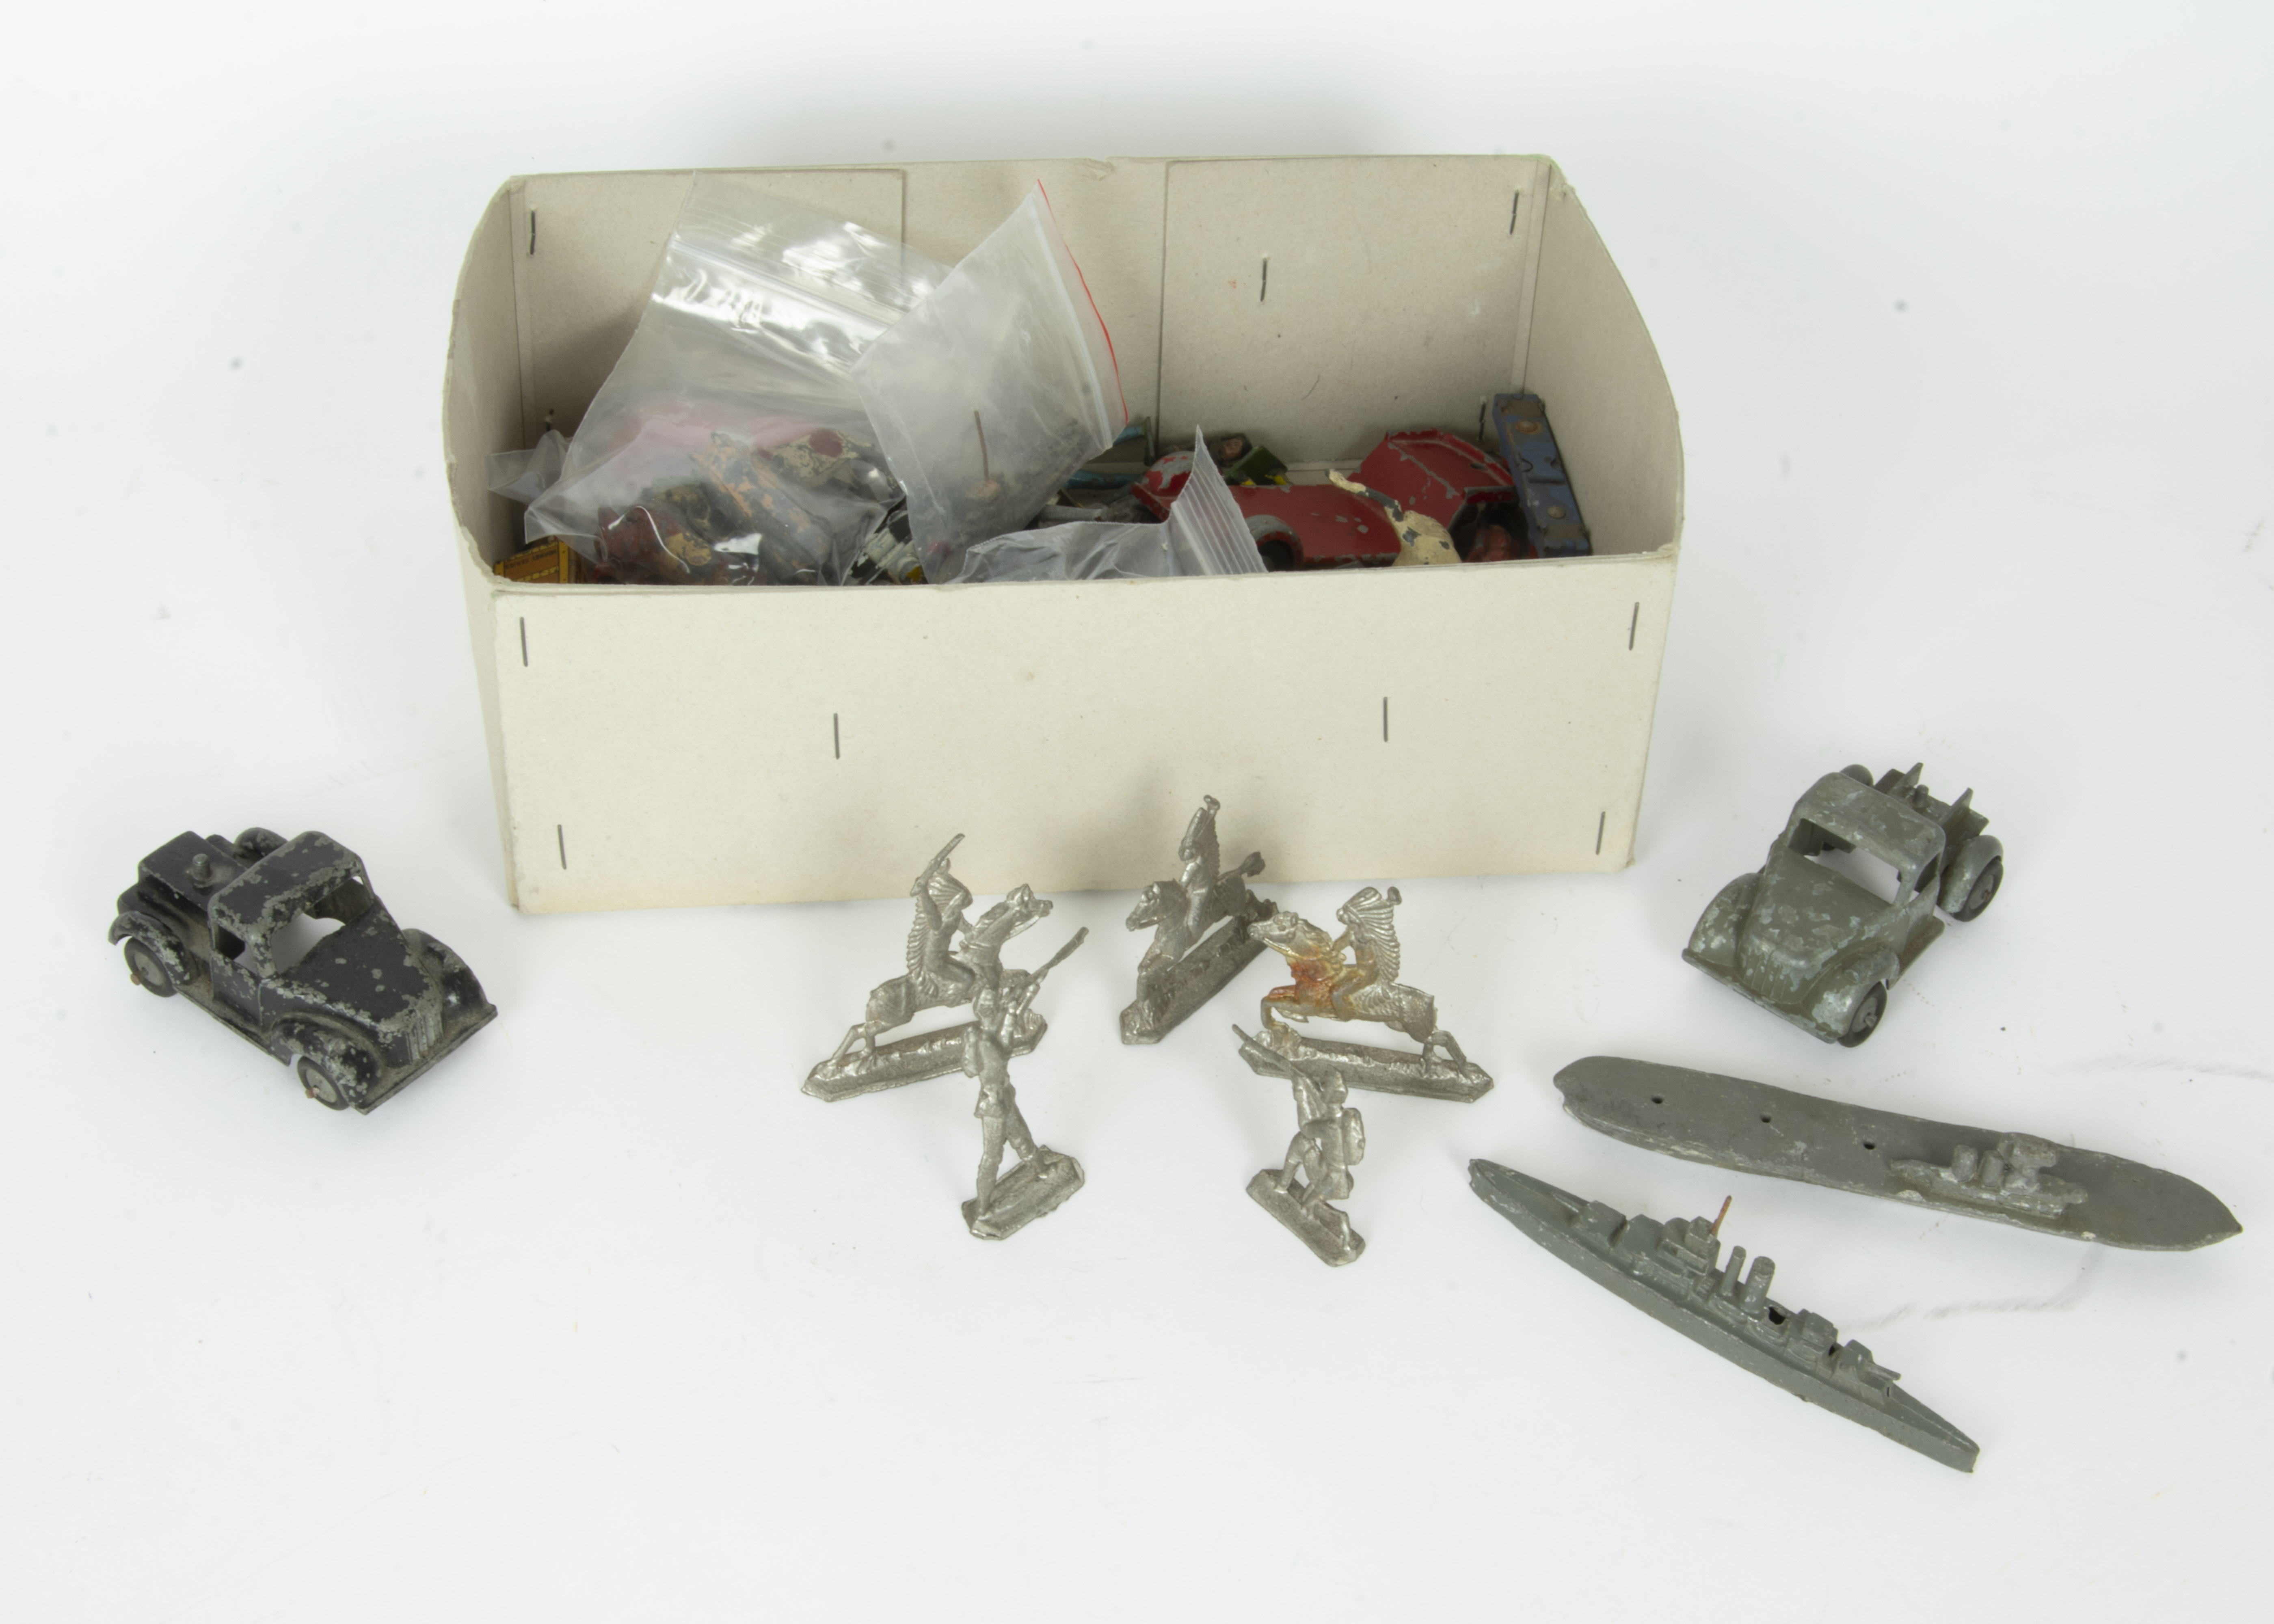 Lot 232 - Various Die-cast Vehicles Street Furniture Lead Soldiers and other items, Timpo trucks, one with low